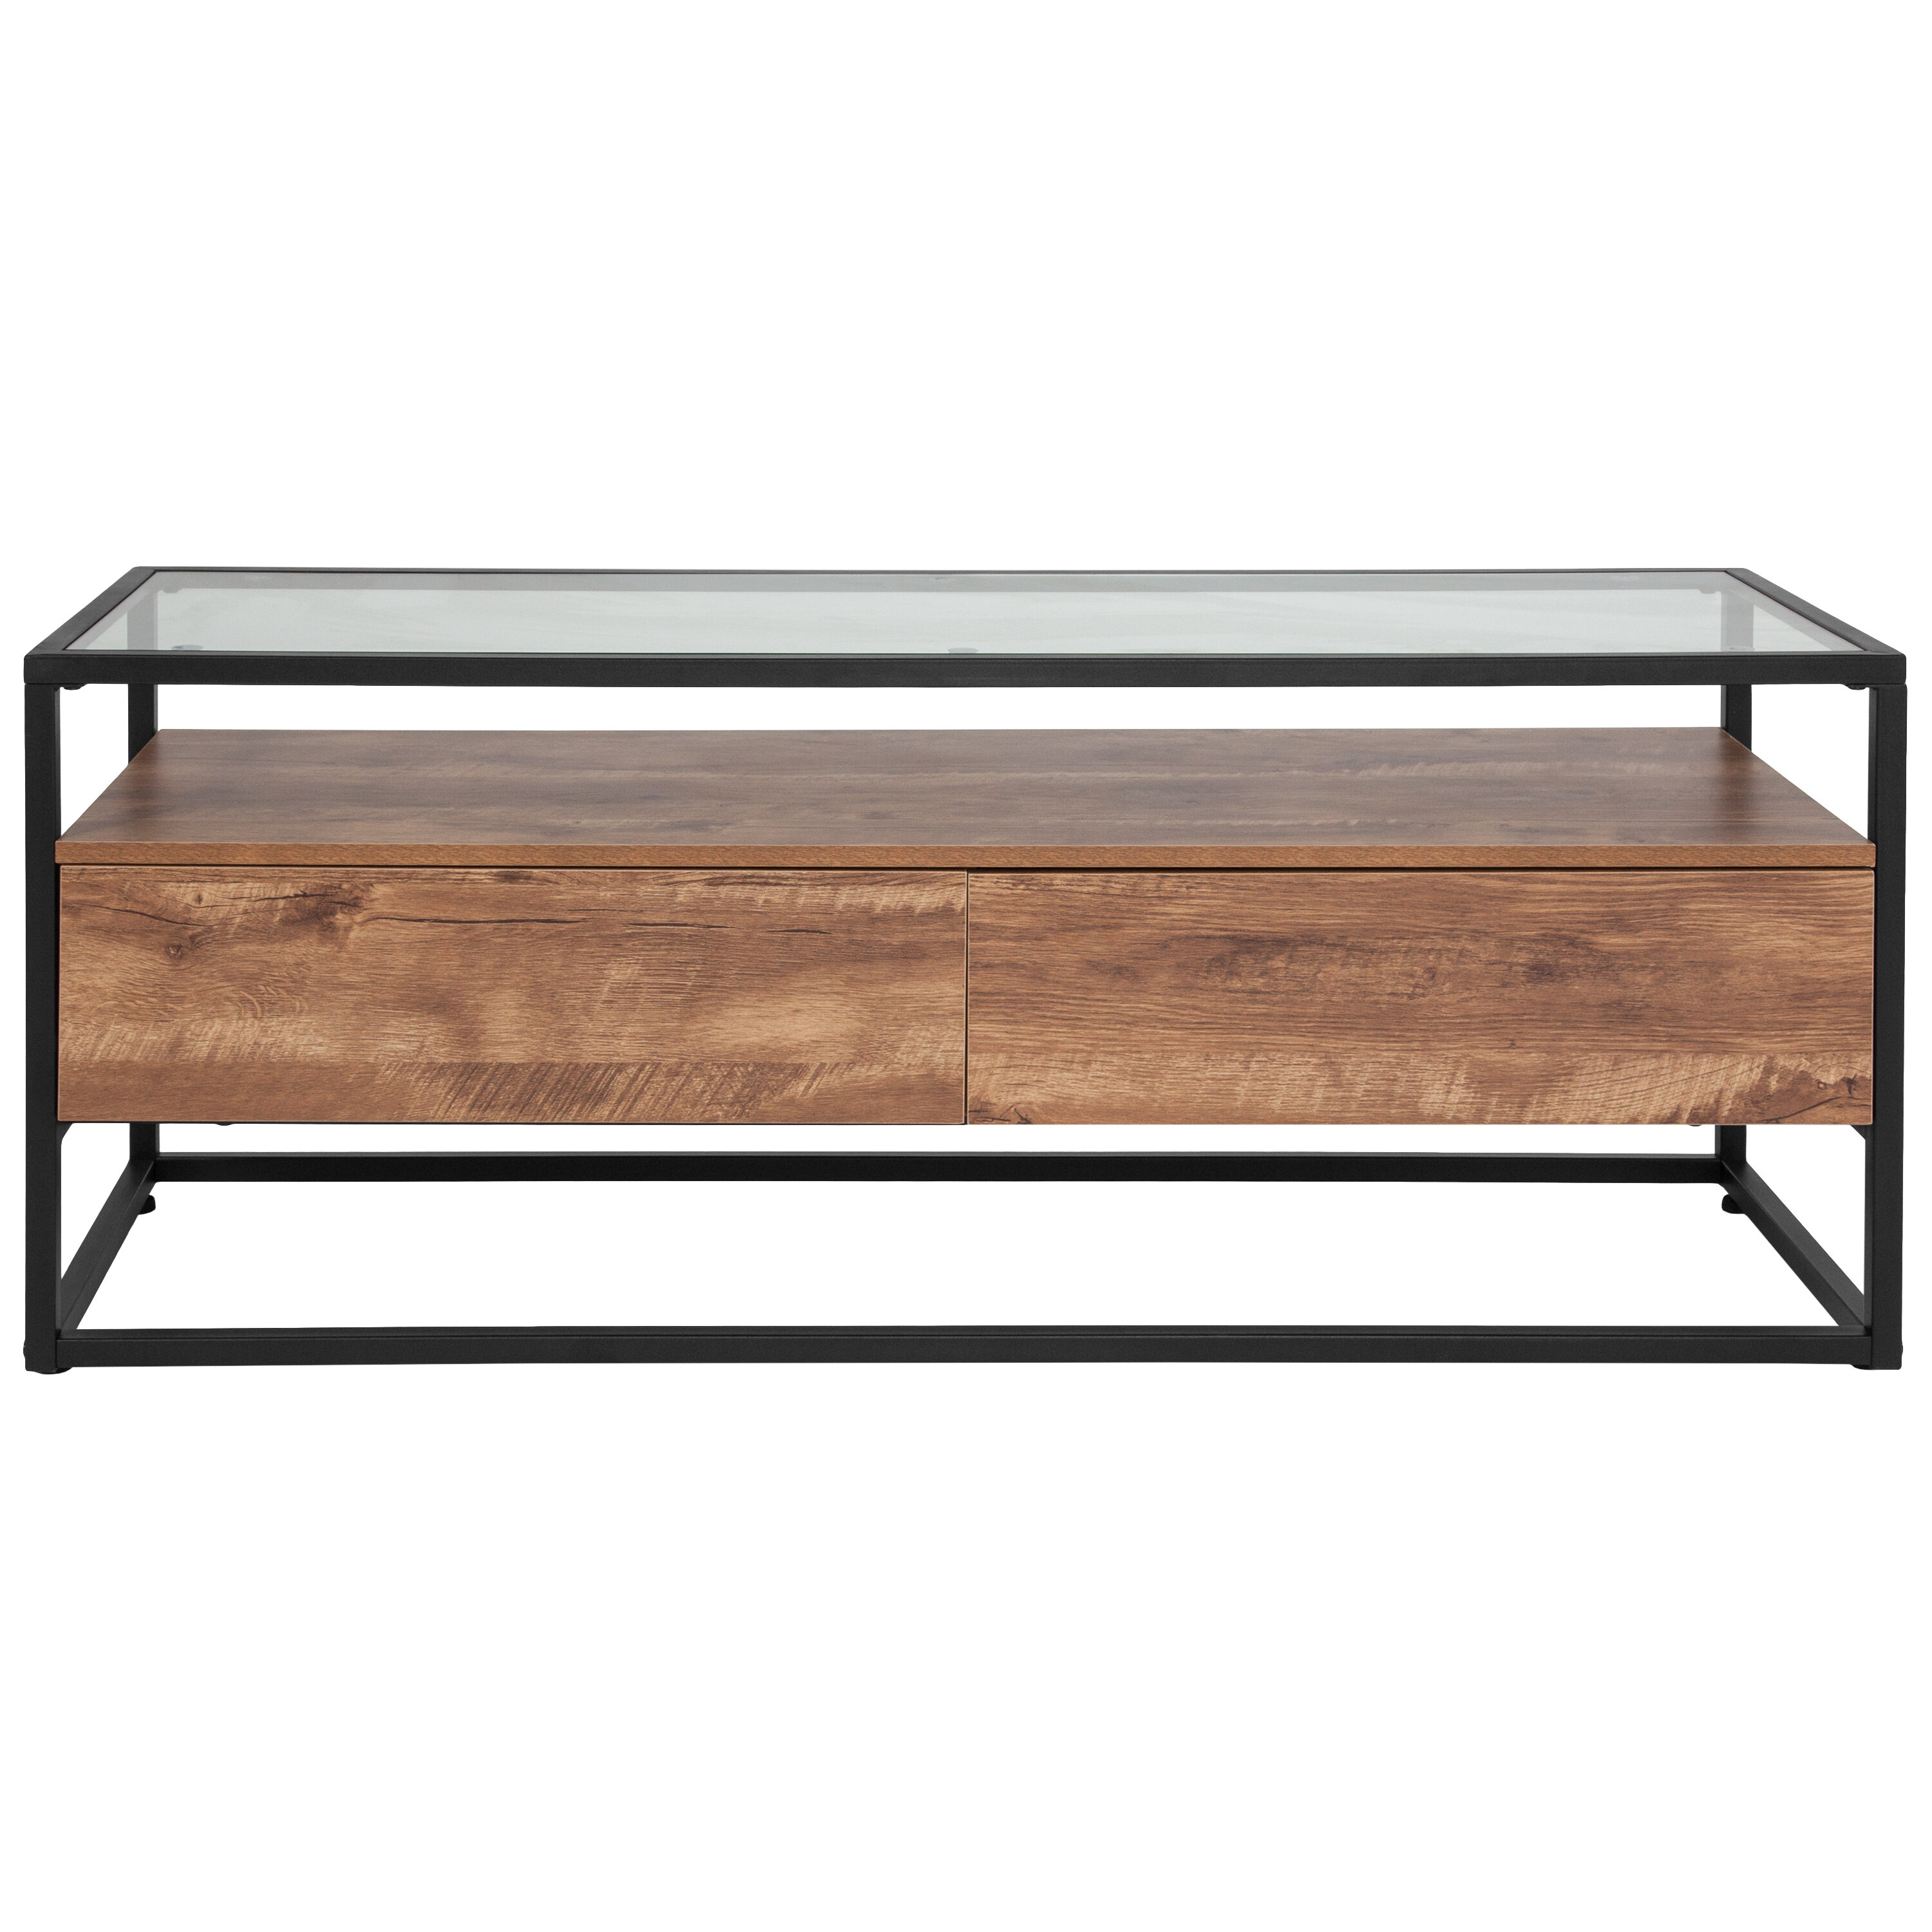 Miraculous Riaan Coffee Table With Storage Dailytribune Chair Design For Home Dailytribuneorg